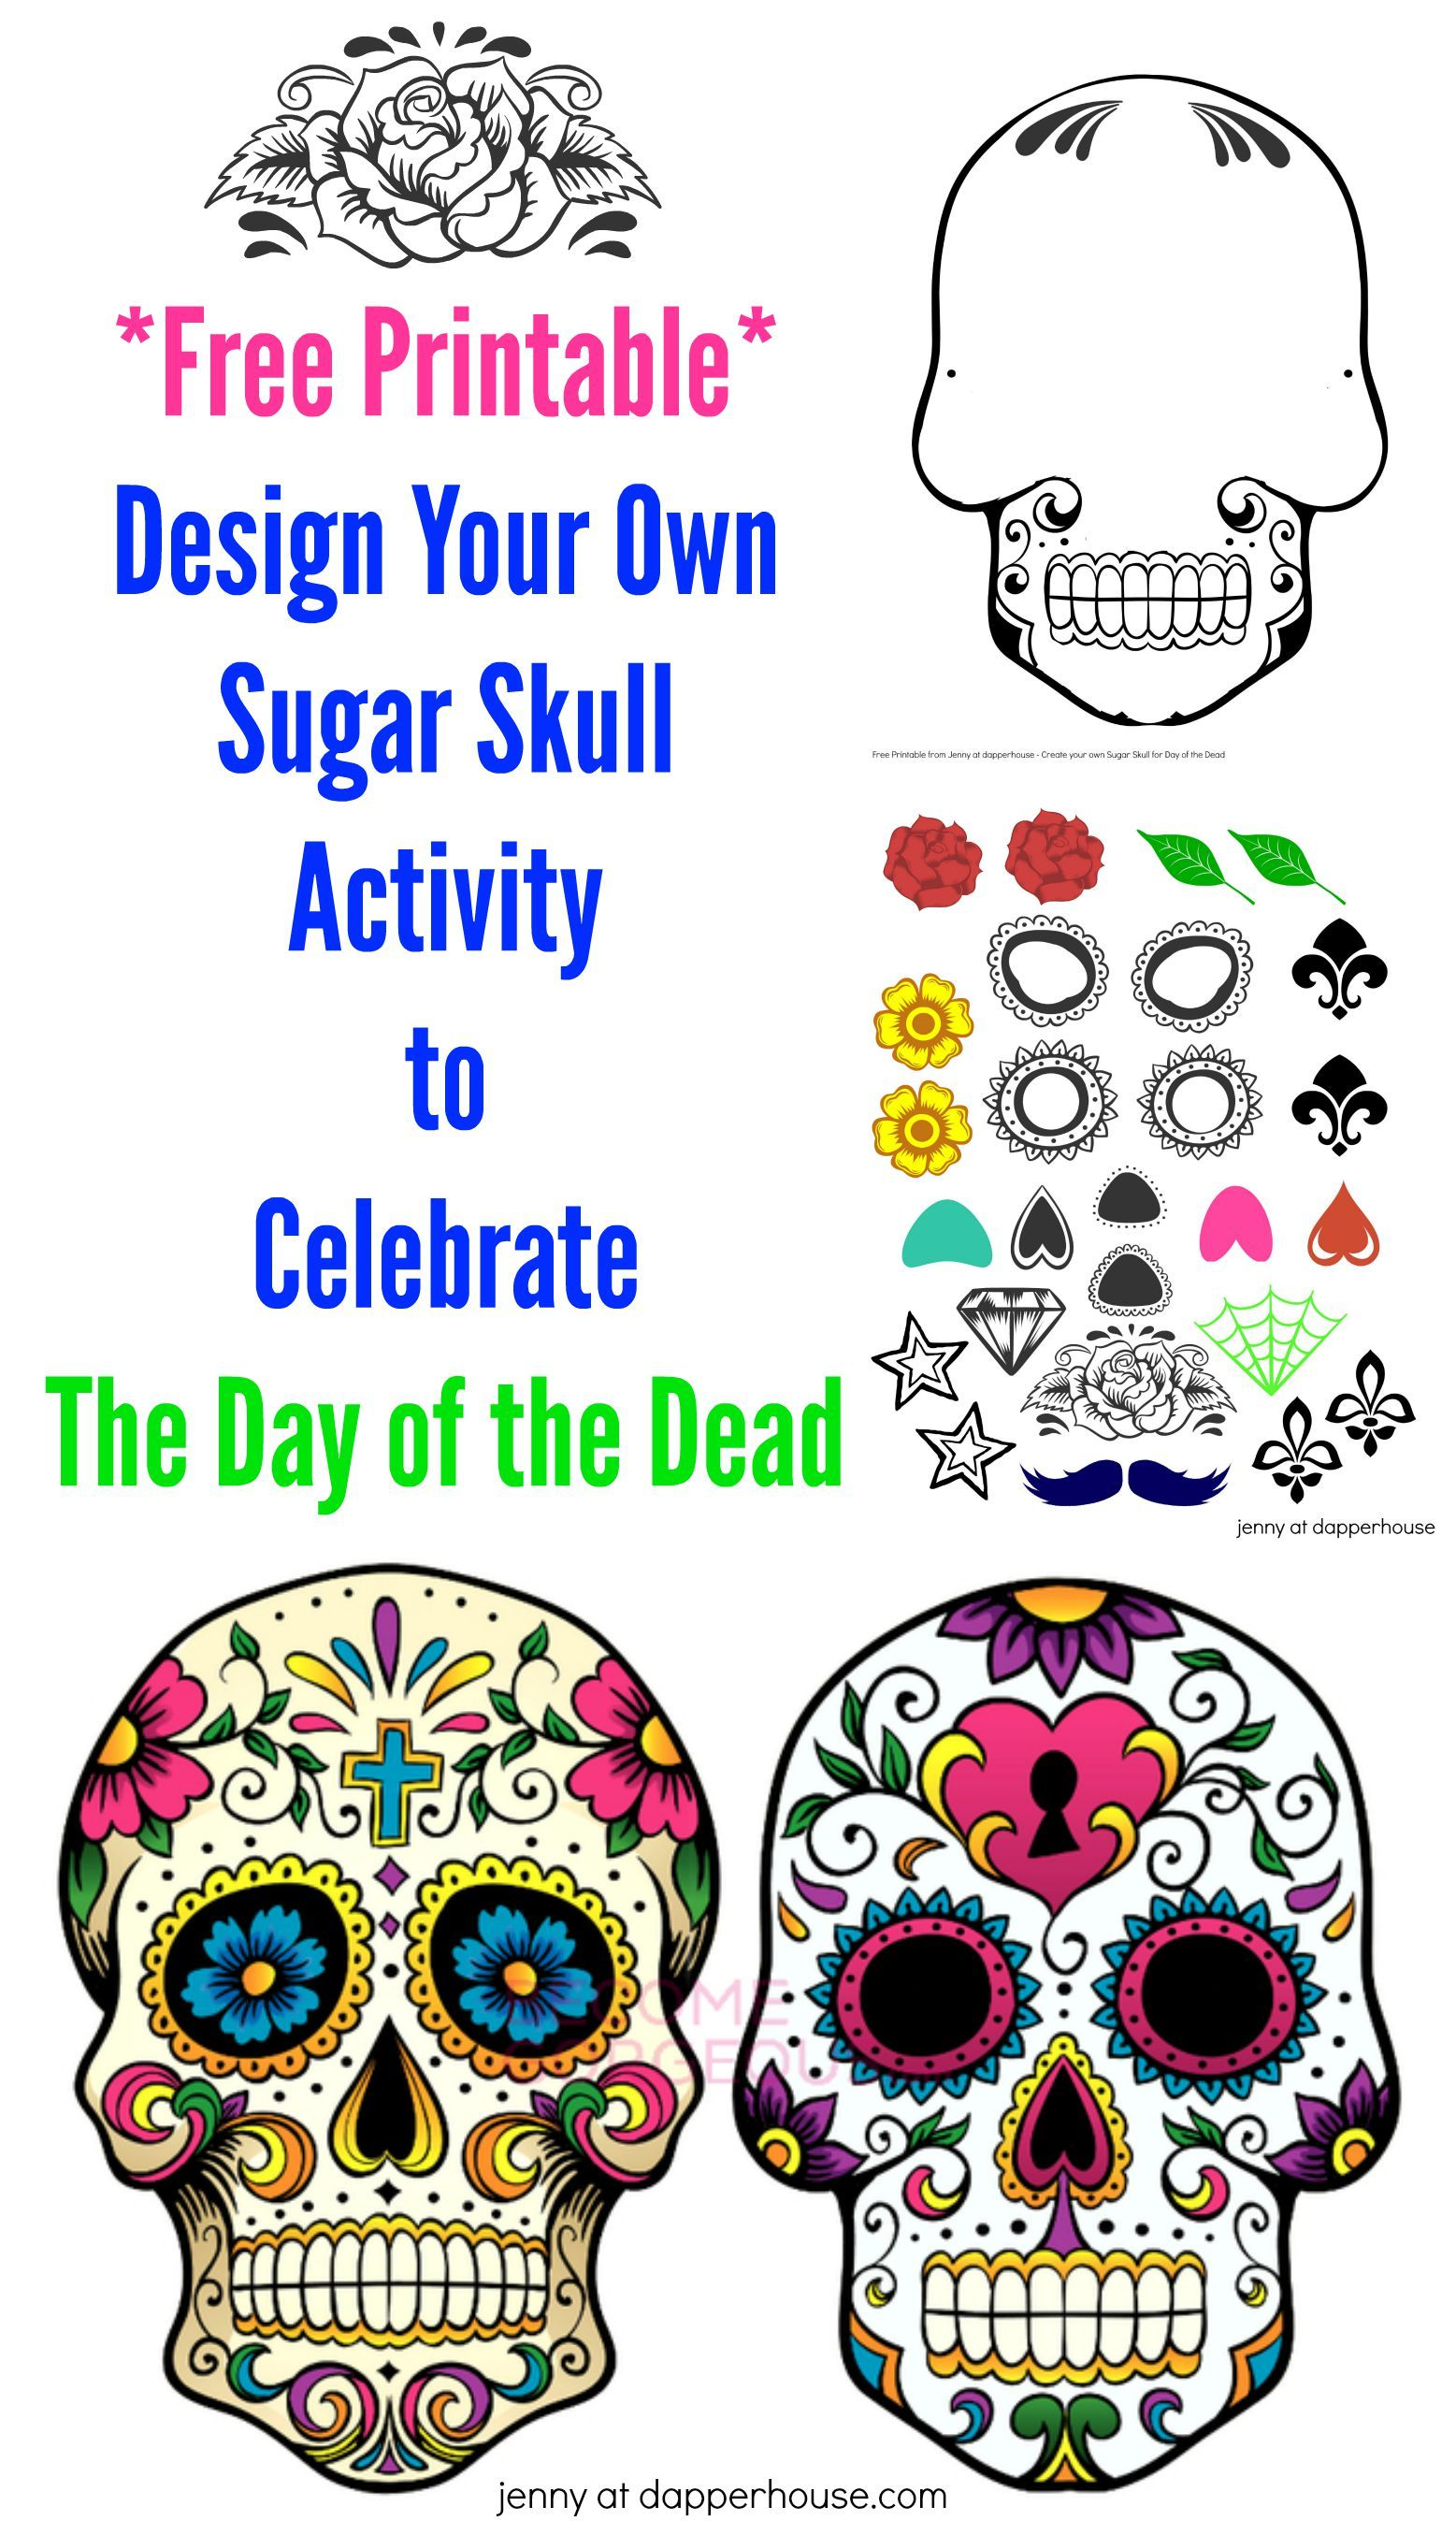 free printable design your own sugar skull activity for day of the dead coloreando. Black Bedroom Furniture Sets. Home Design Ideas